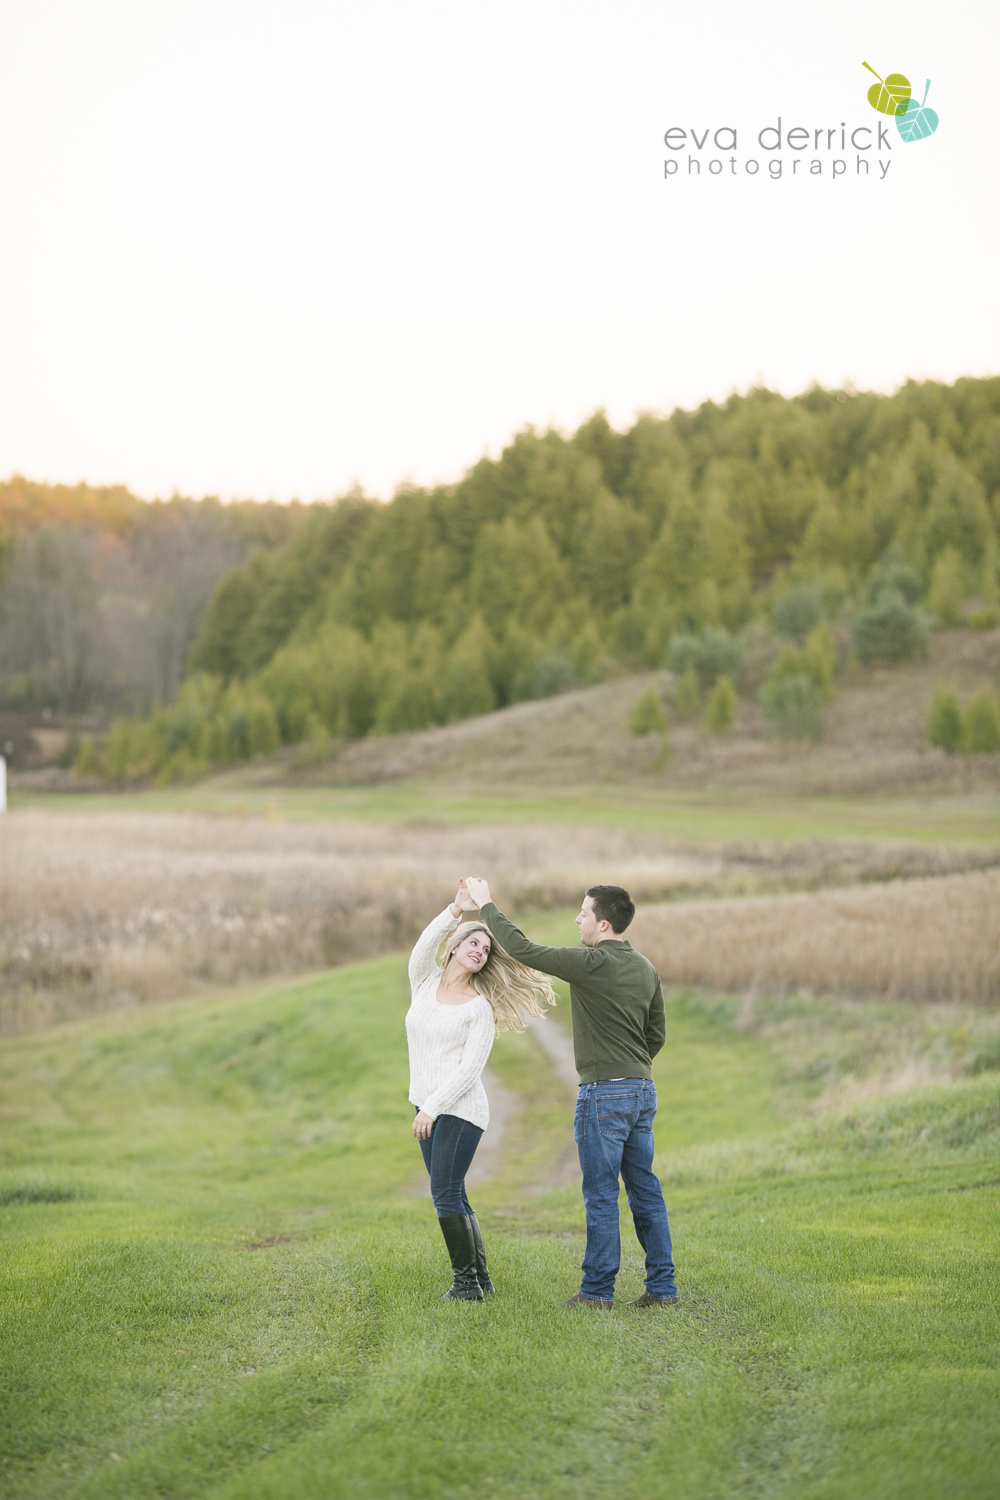 Albion-Hills-Photographer-Engagement-Session-Alanna-Matt-photography-by-Eva-Derrick-Photography-024.JPG